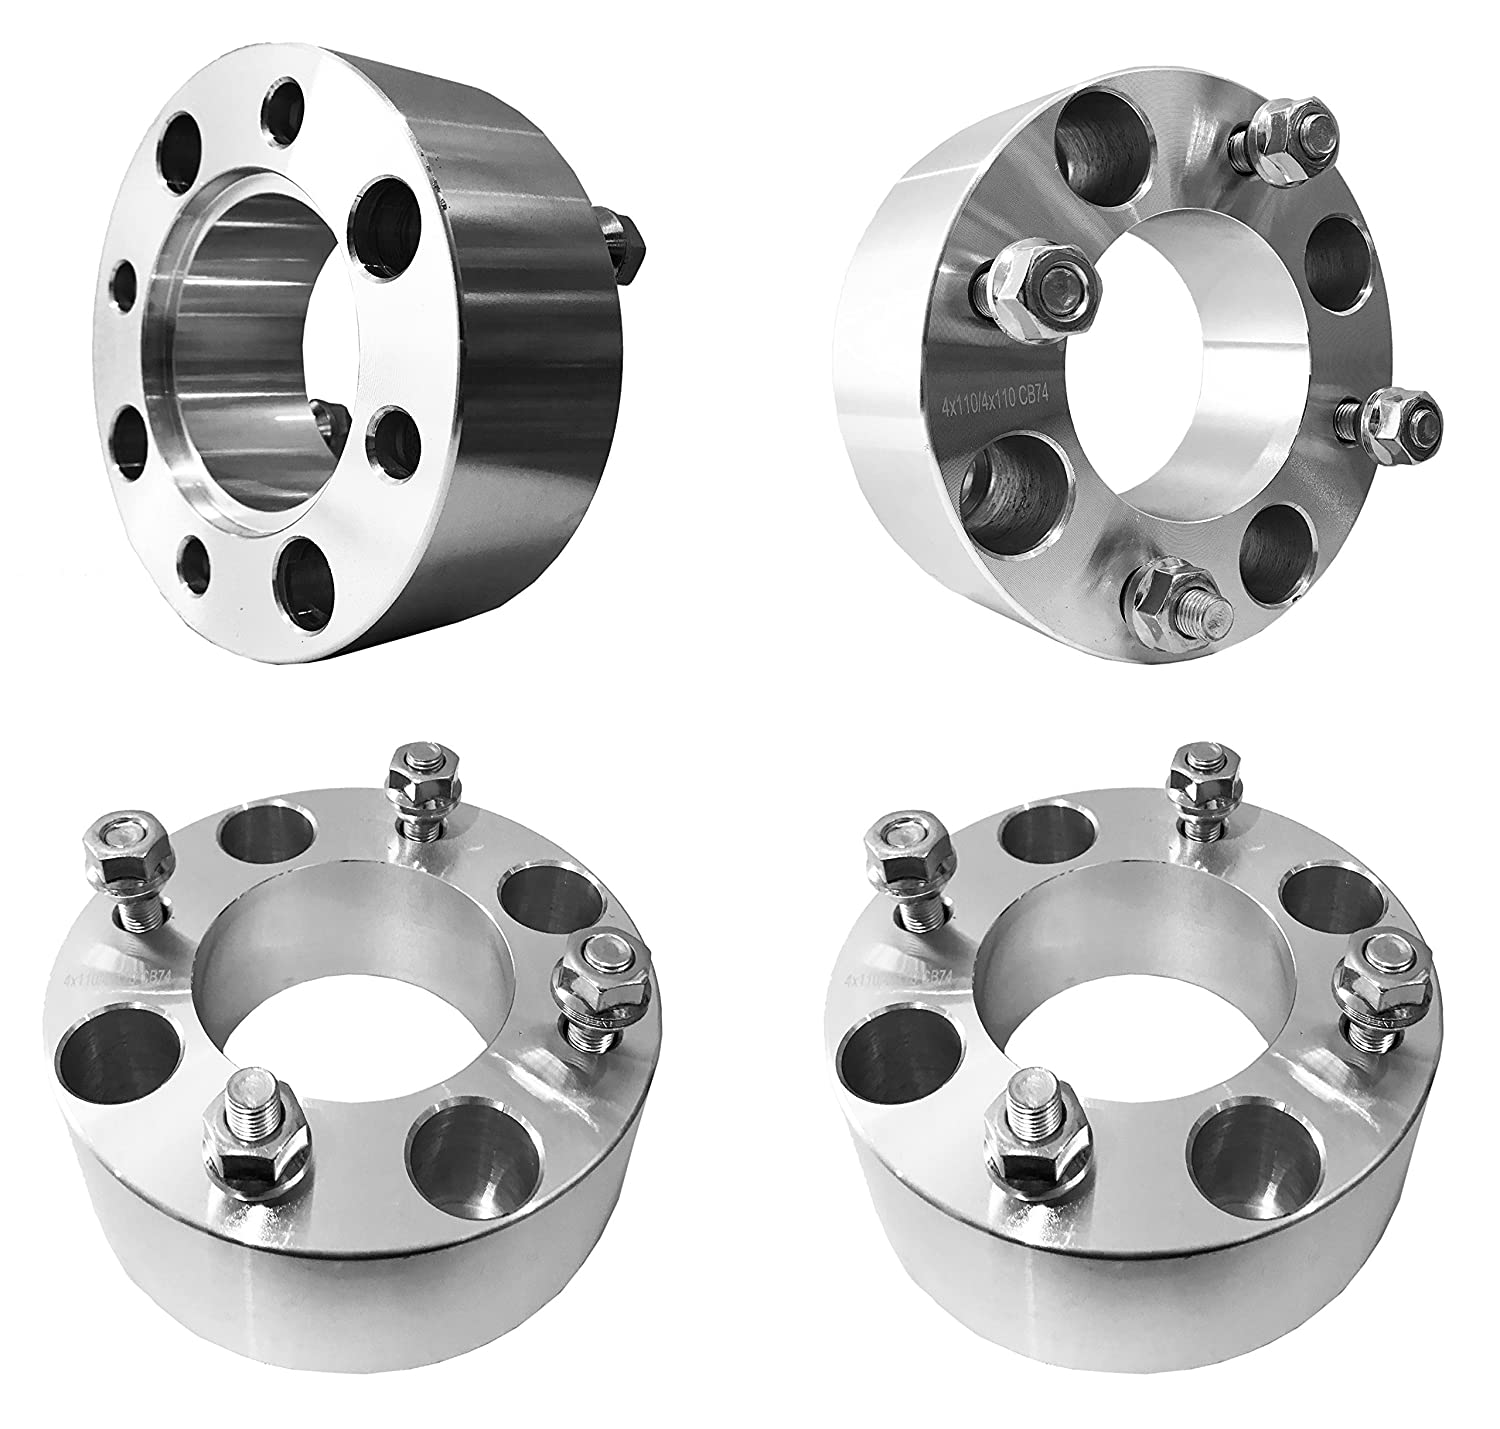 FAS Motorsports 4x110 Wheel Spacers 2' (50mm) (74mm bore, 10x1.25 Studs) for Suzuki Eiger King Quad Ozard Vinson, Yamaha Big Bear Grizzly Bruin Rhino, ATV, UTV (4Pcs)